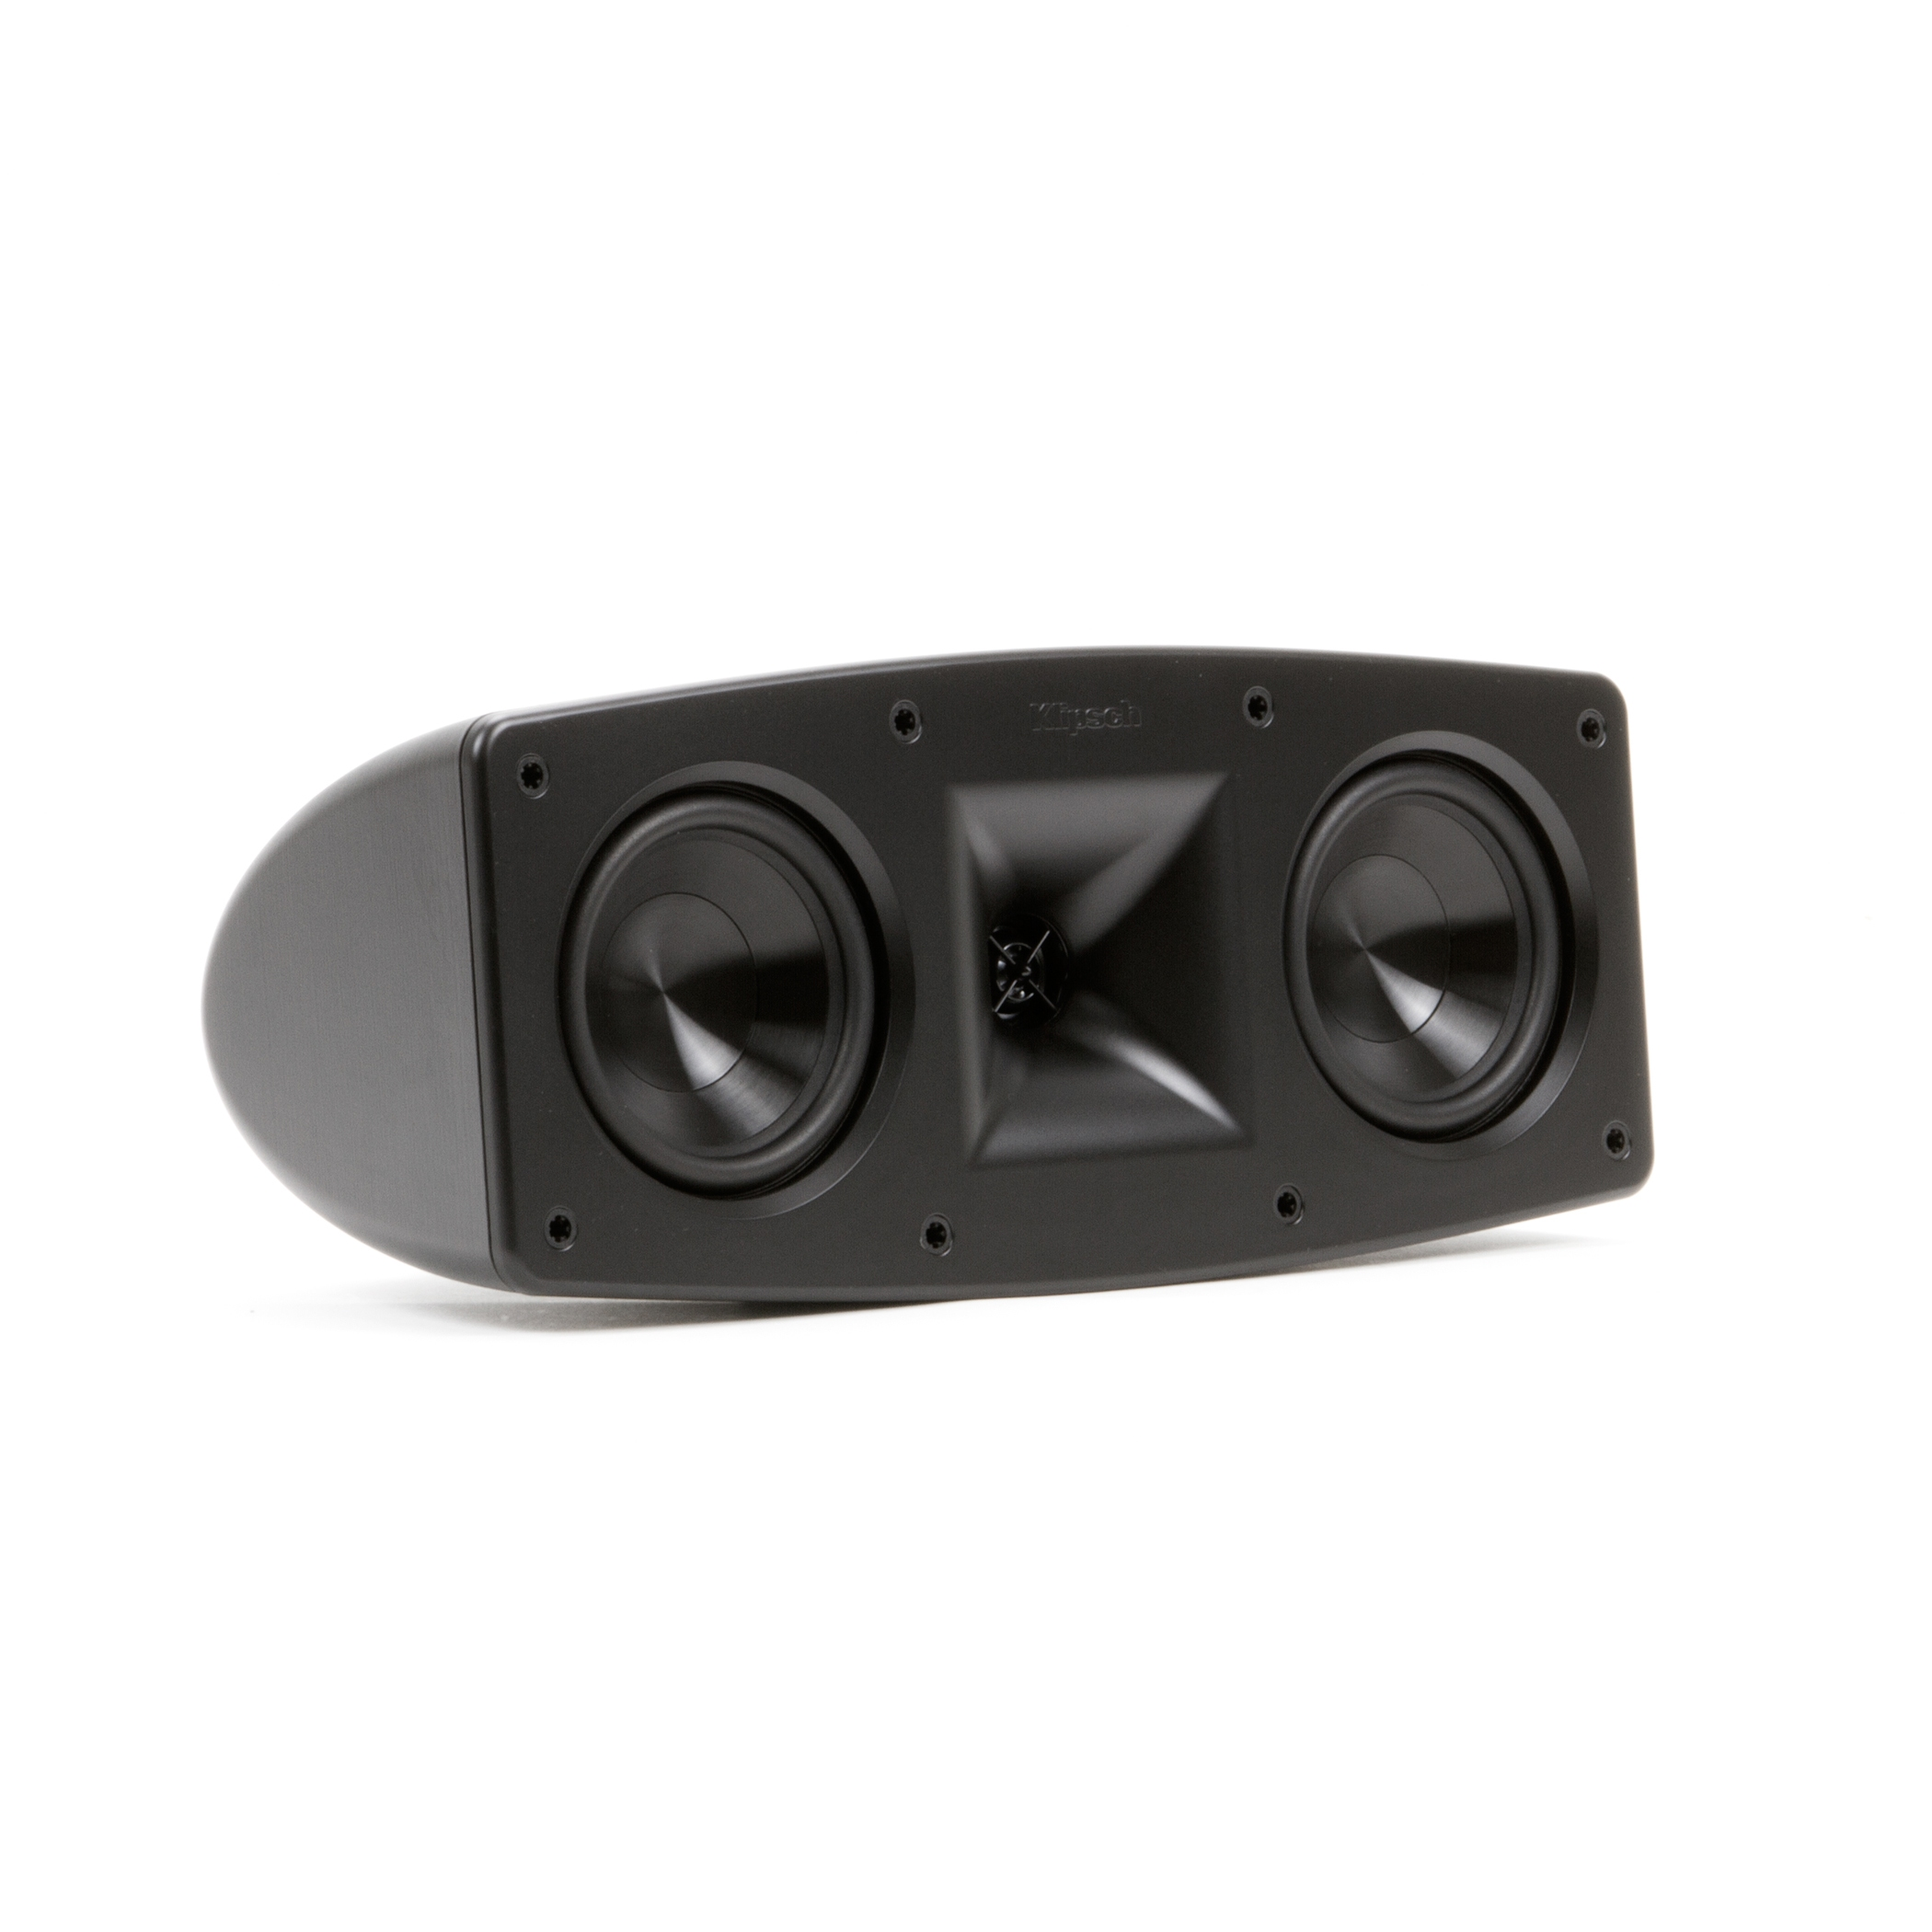 Angle Center Channel Ceiling Speaker Www Gradschoolfairs Com